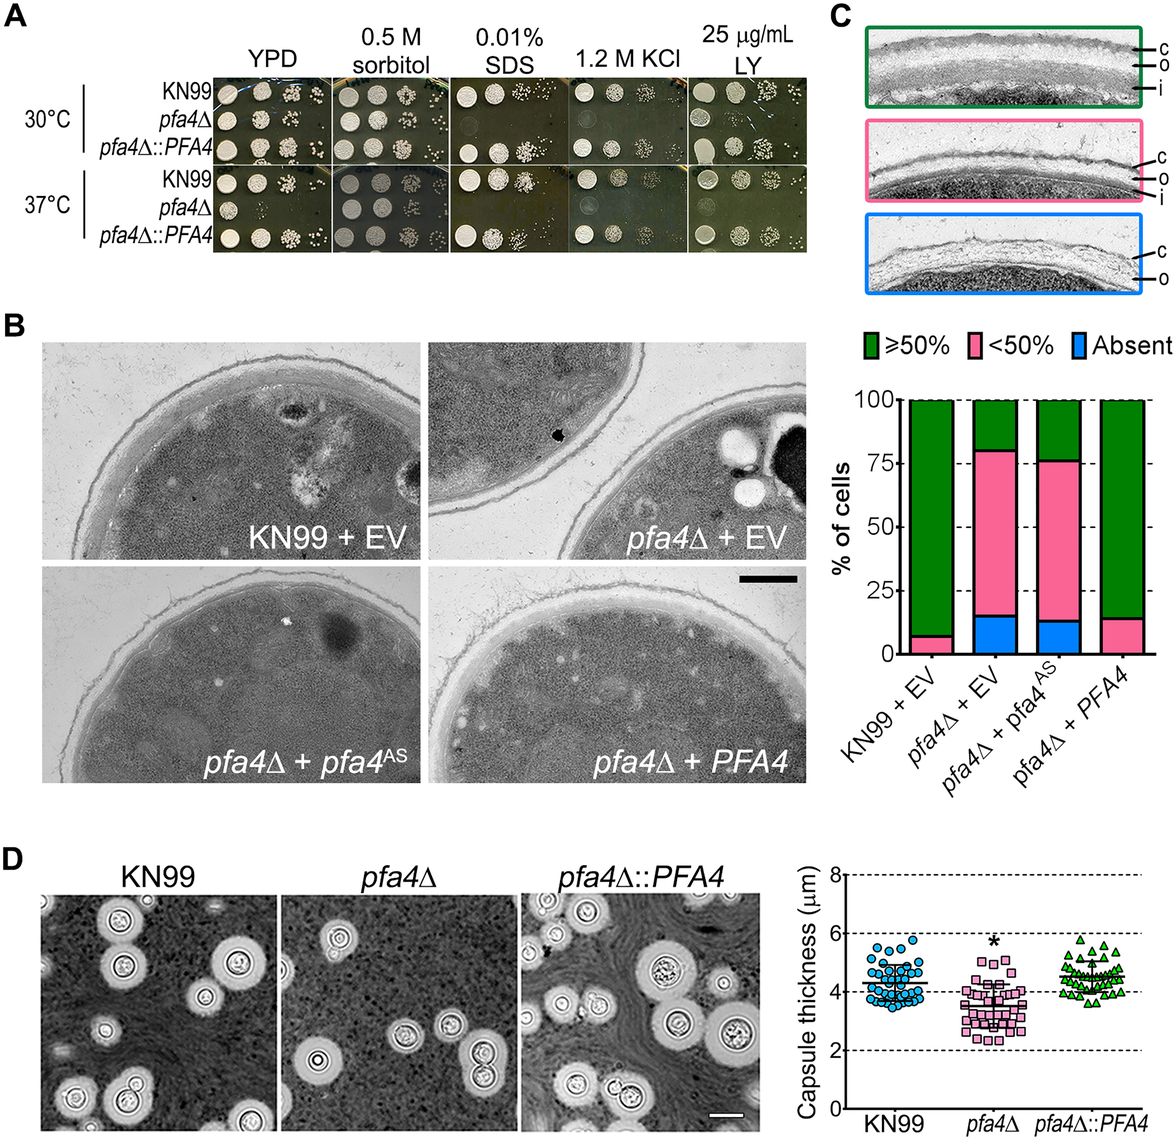 <i>pfa4</i>Δ has defects in cell wall integrity and structure.